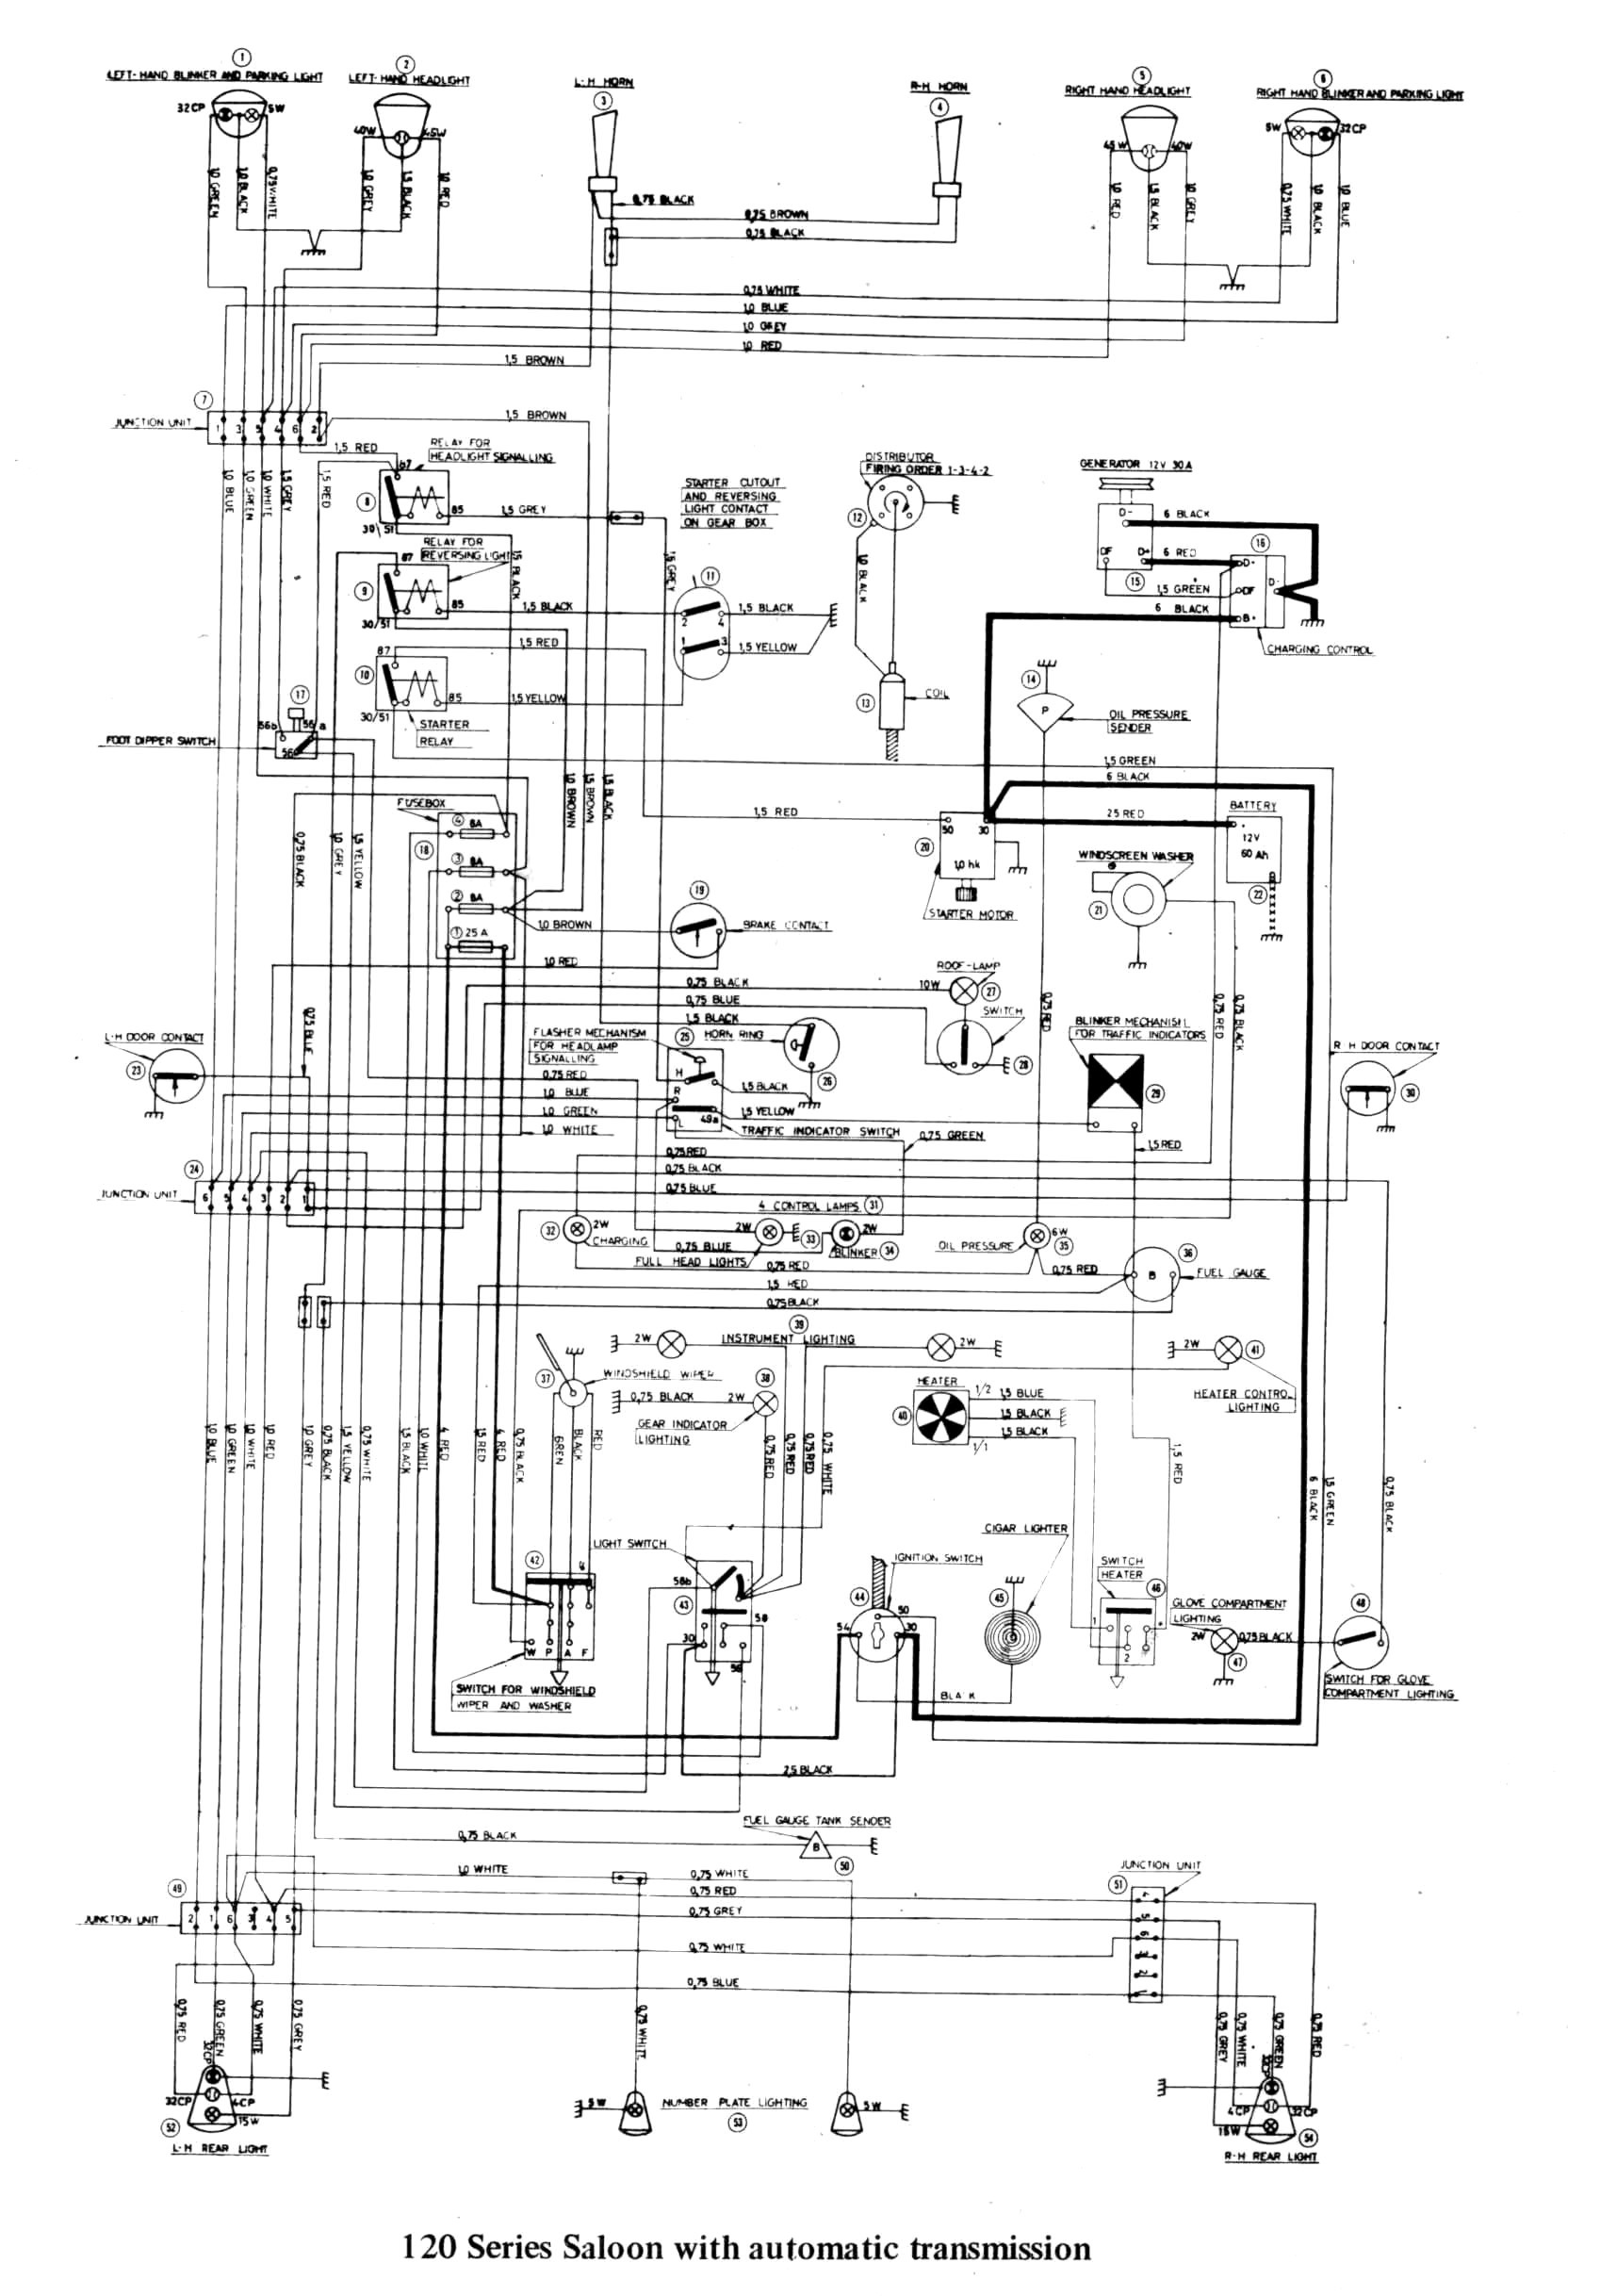 Typical Ac Wiring Diagram Fresh Electrical Wiring Diagram Lovely Sw